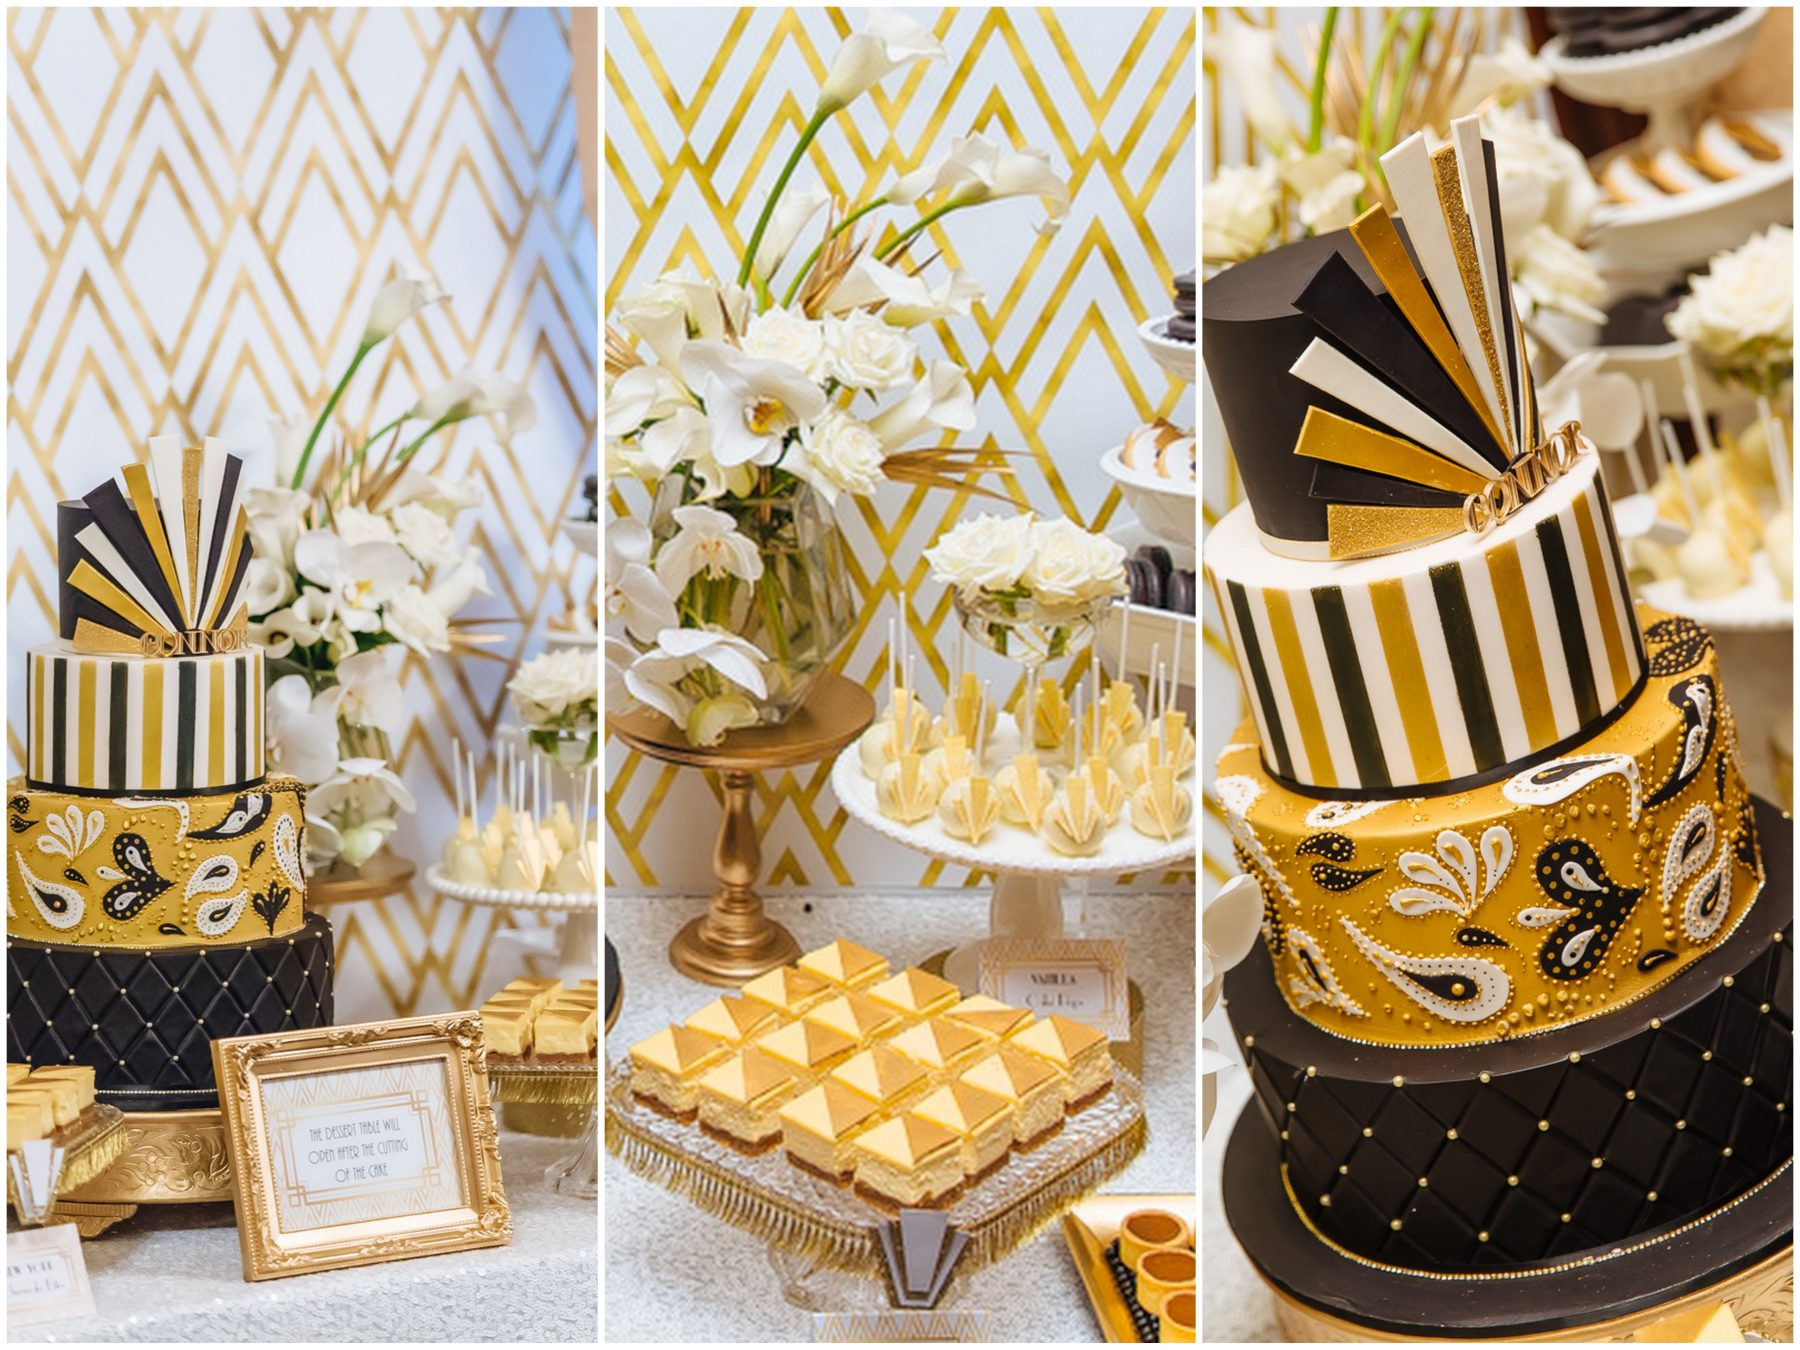 Dessert tables and food styling